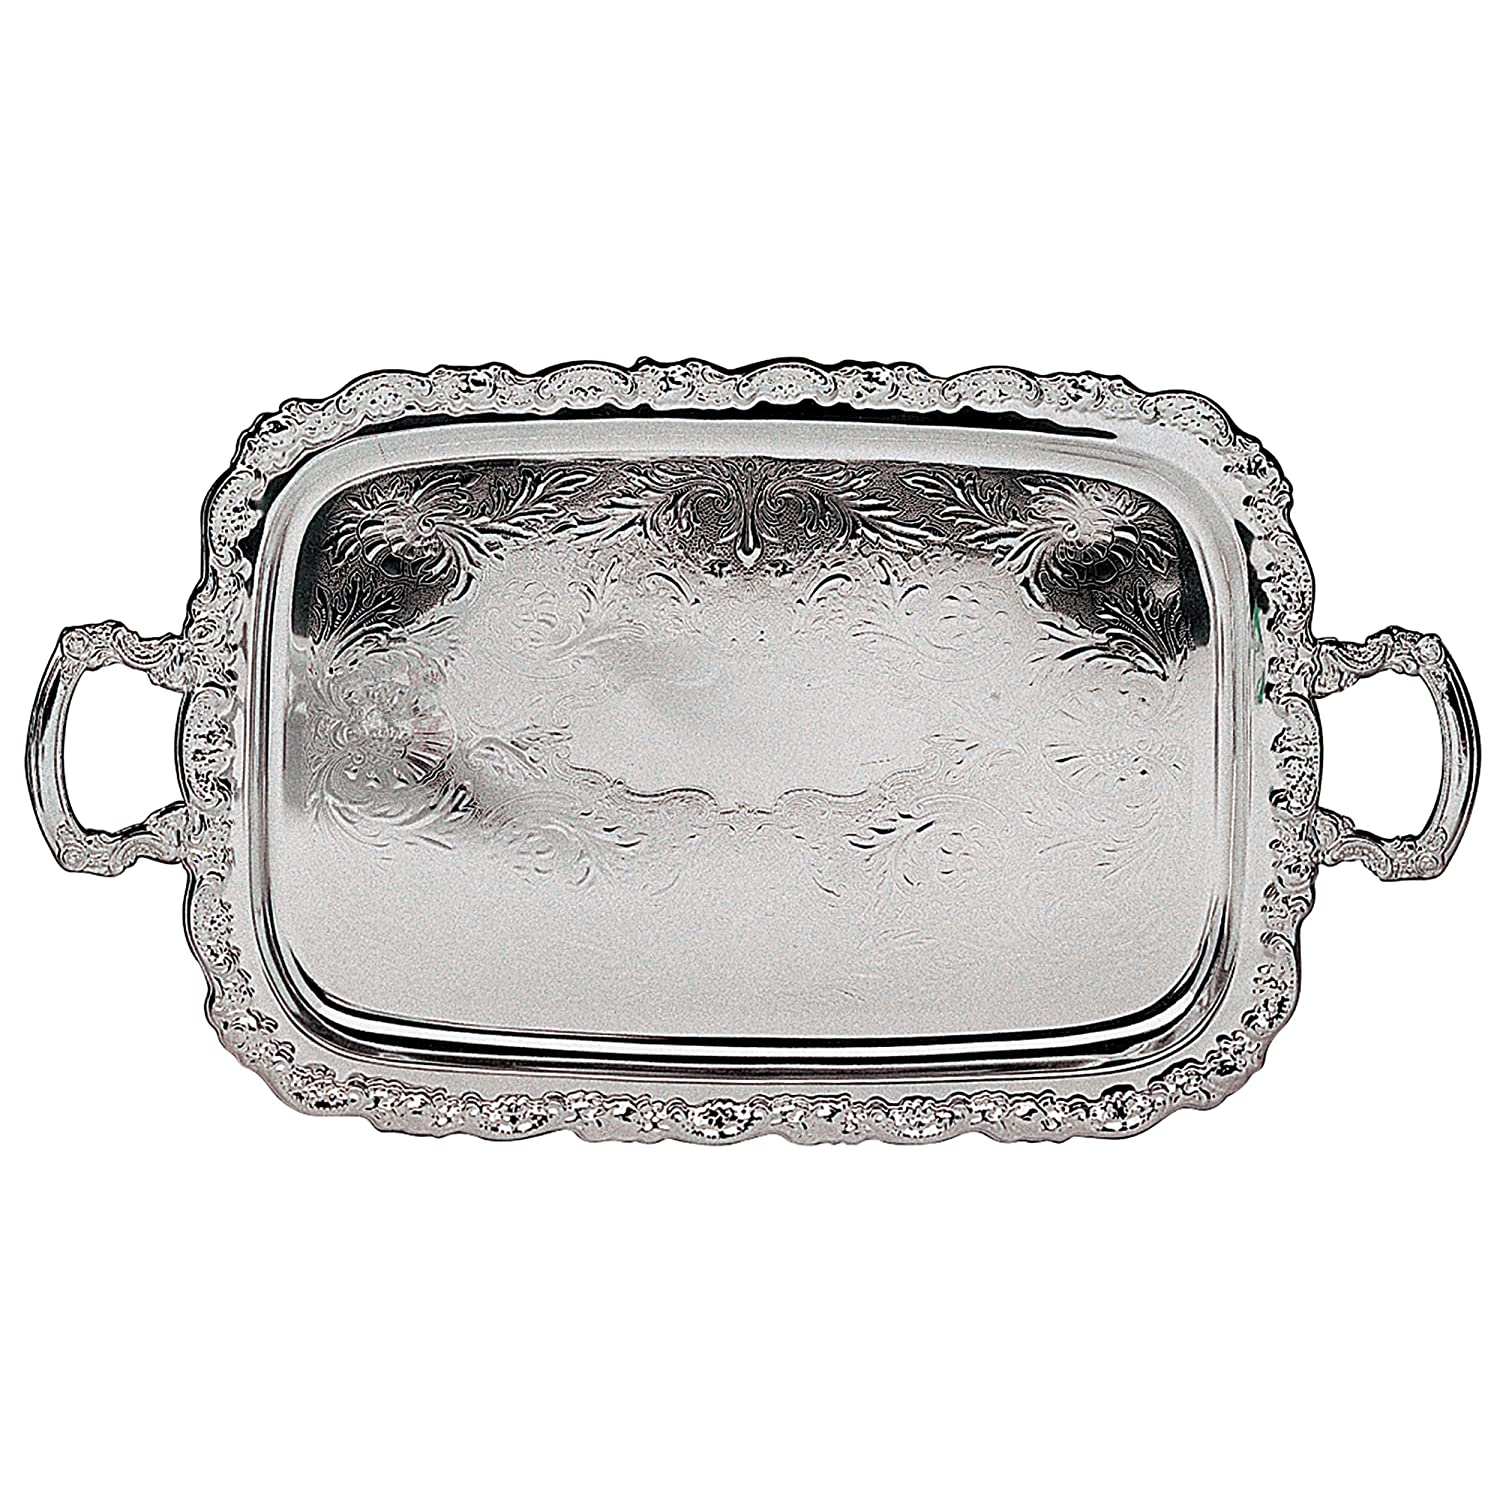 Excellent Amazon.com: Elegance Silver Ashley Silver Plated Tray With Handles  RR04